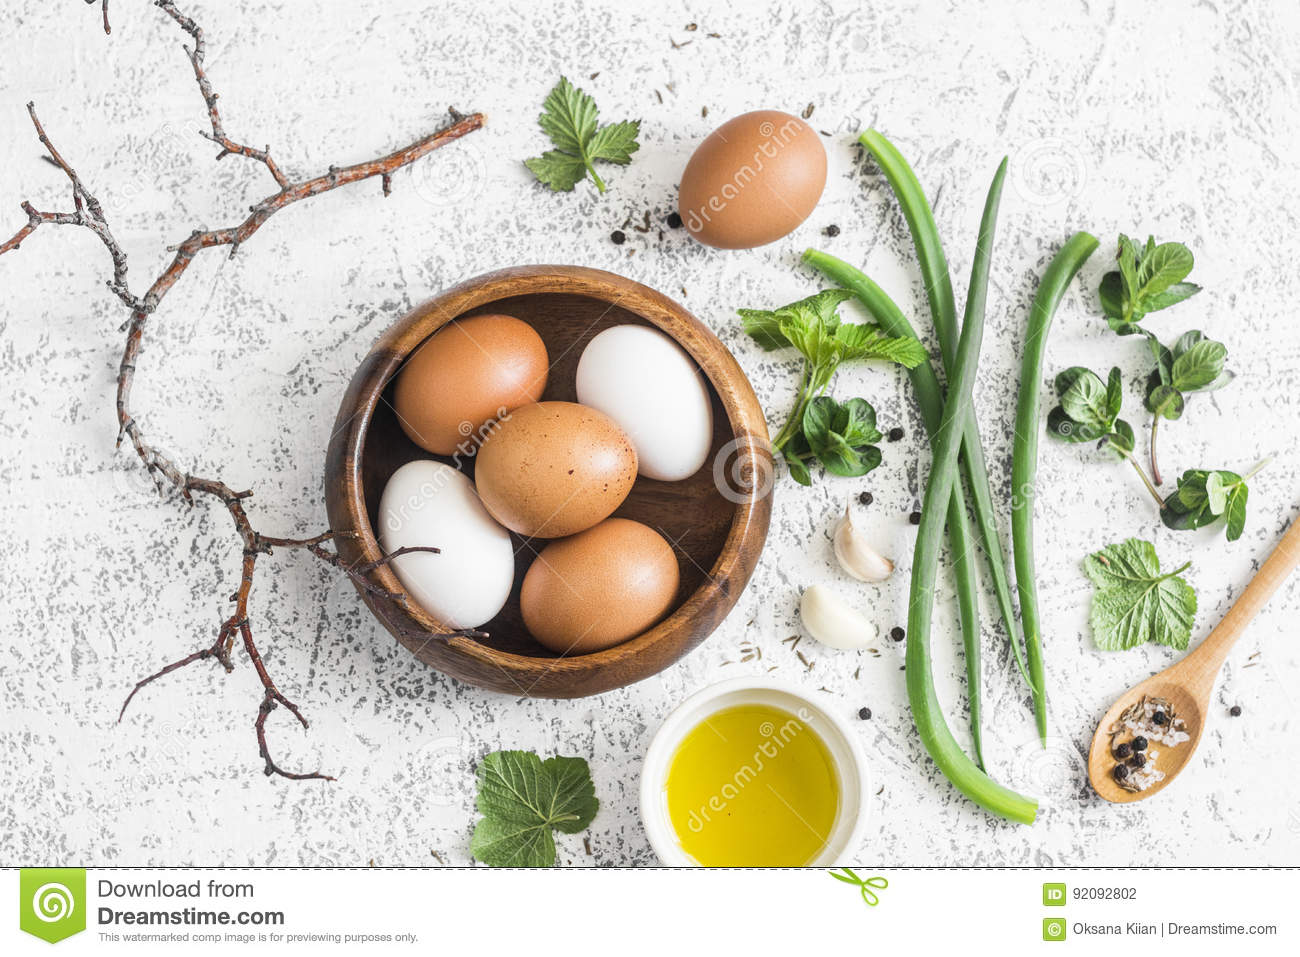 Garden herbs, spices and eggs rustic kitchen still life.On a light table, top view. Flat lay. Ingredients for cooking omelet with